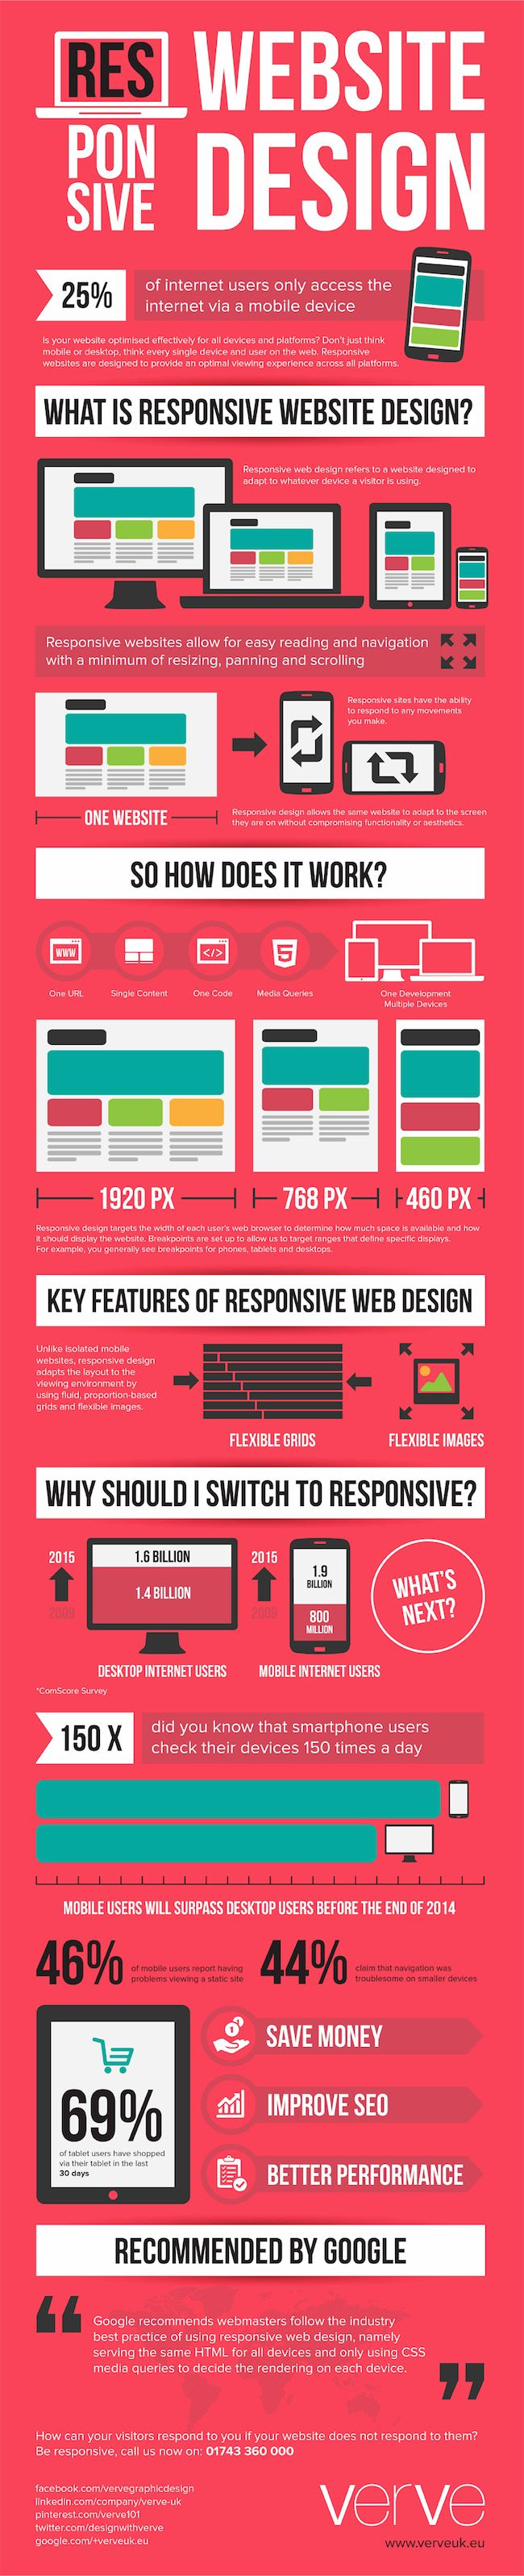 What is Responsive Web-Design? This InfoGraphic explains how responsive design displays your website on various devices (e.g. desktop, iPad, iPhone, Android, etc.)